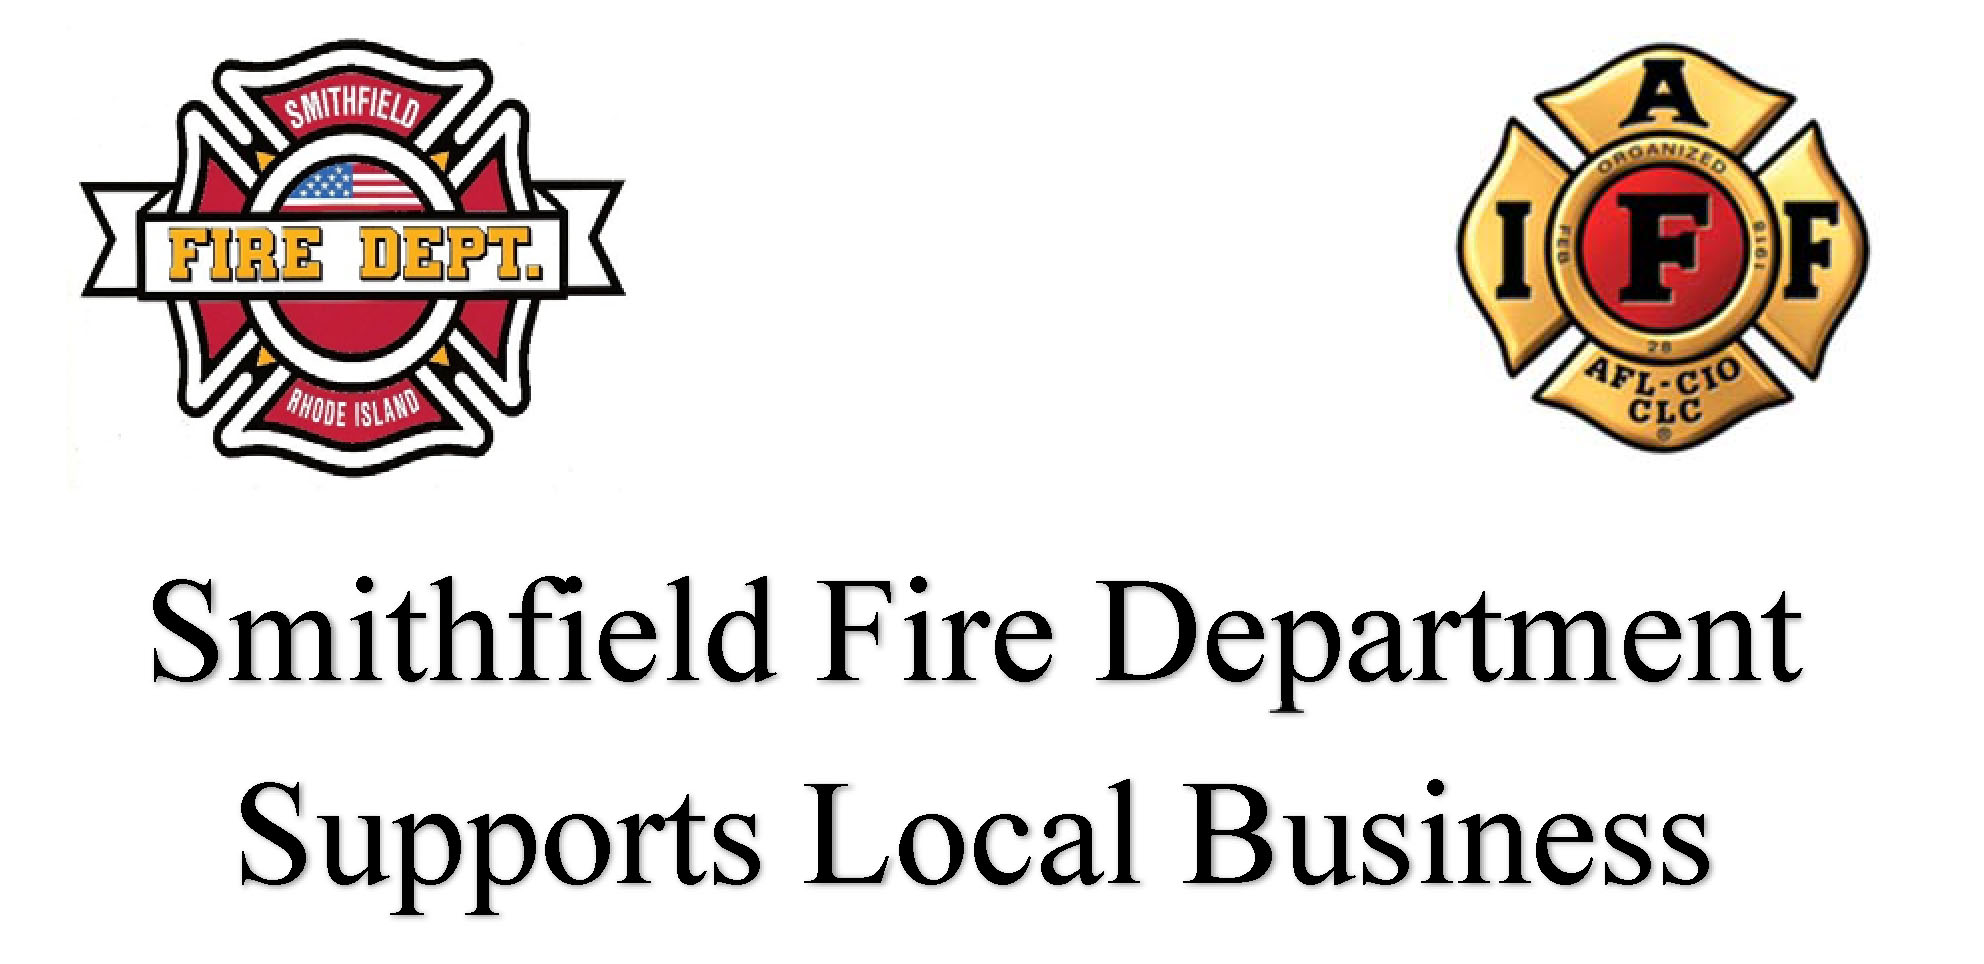 Smithfield Fire Department Supports Local Business